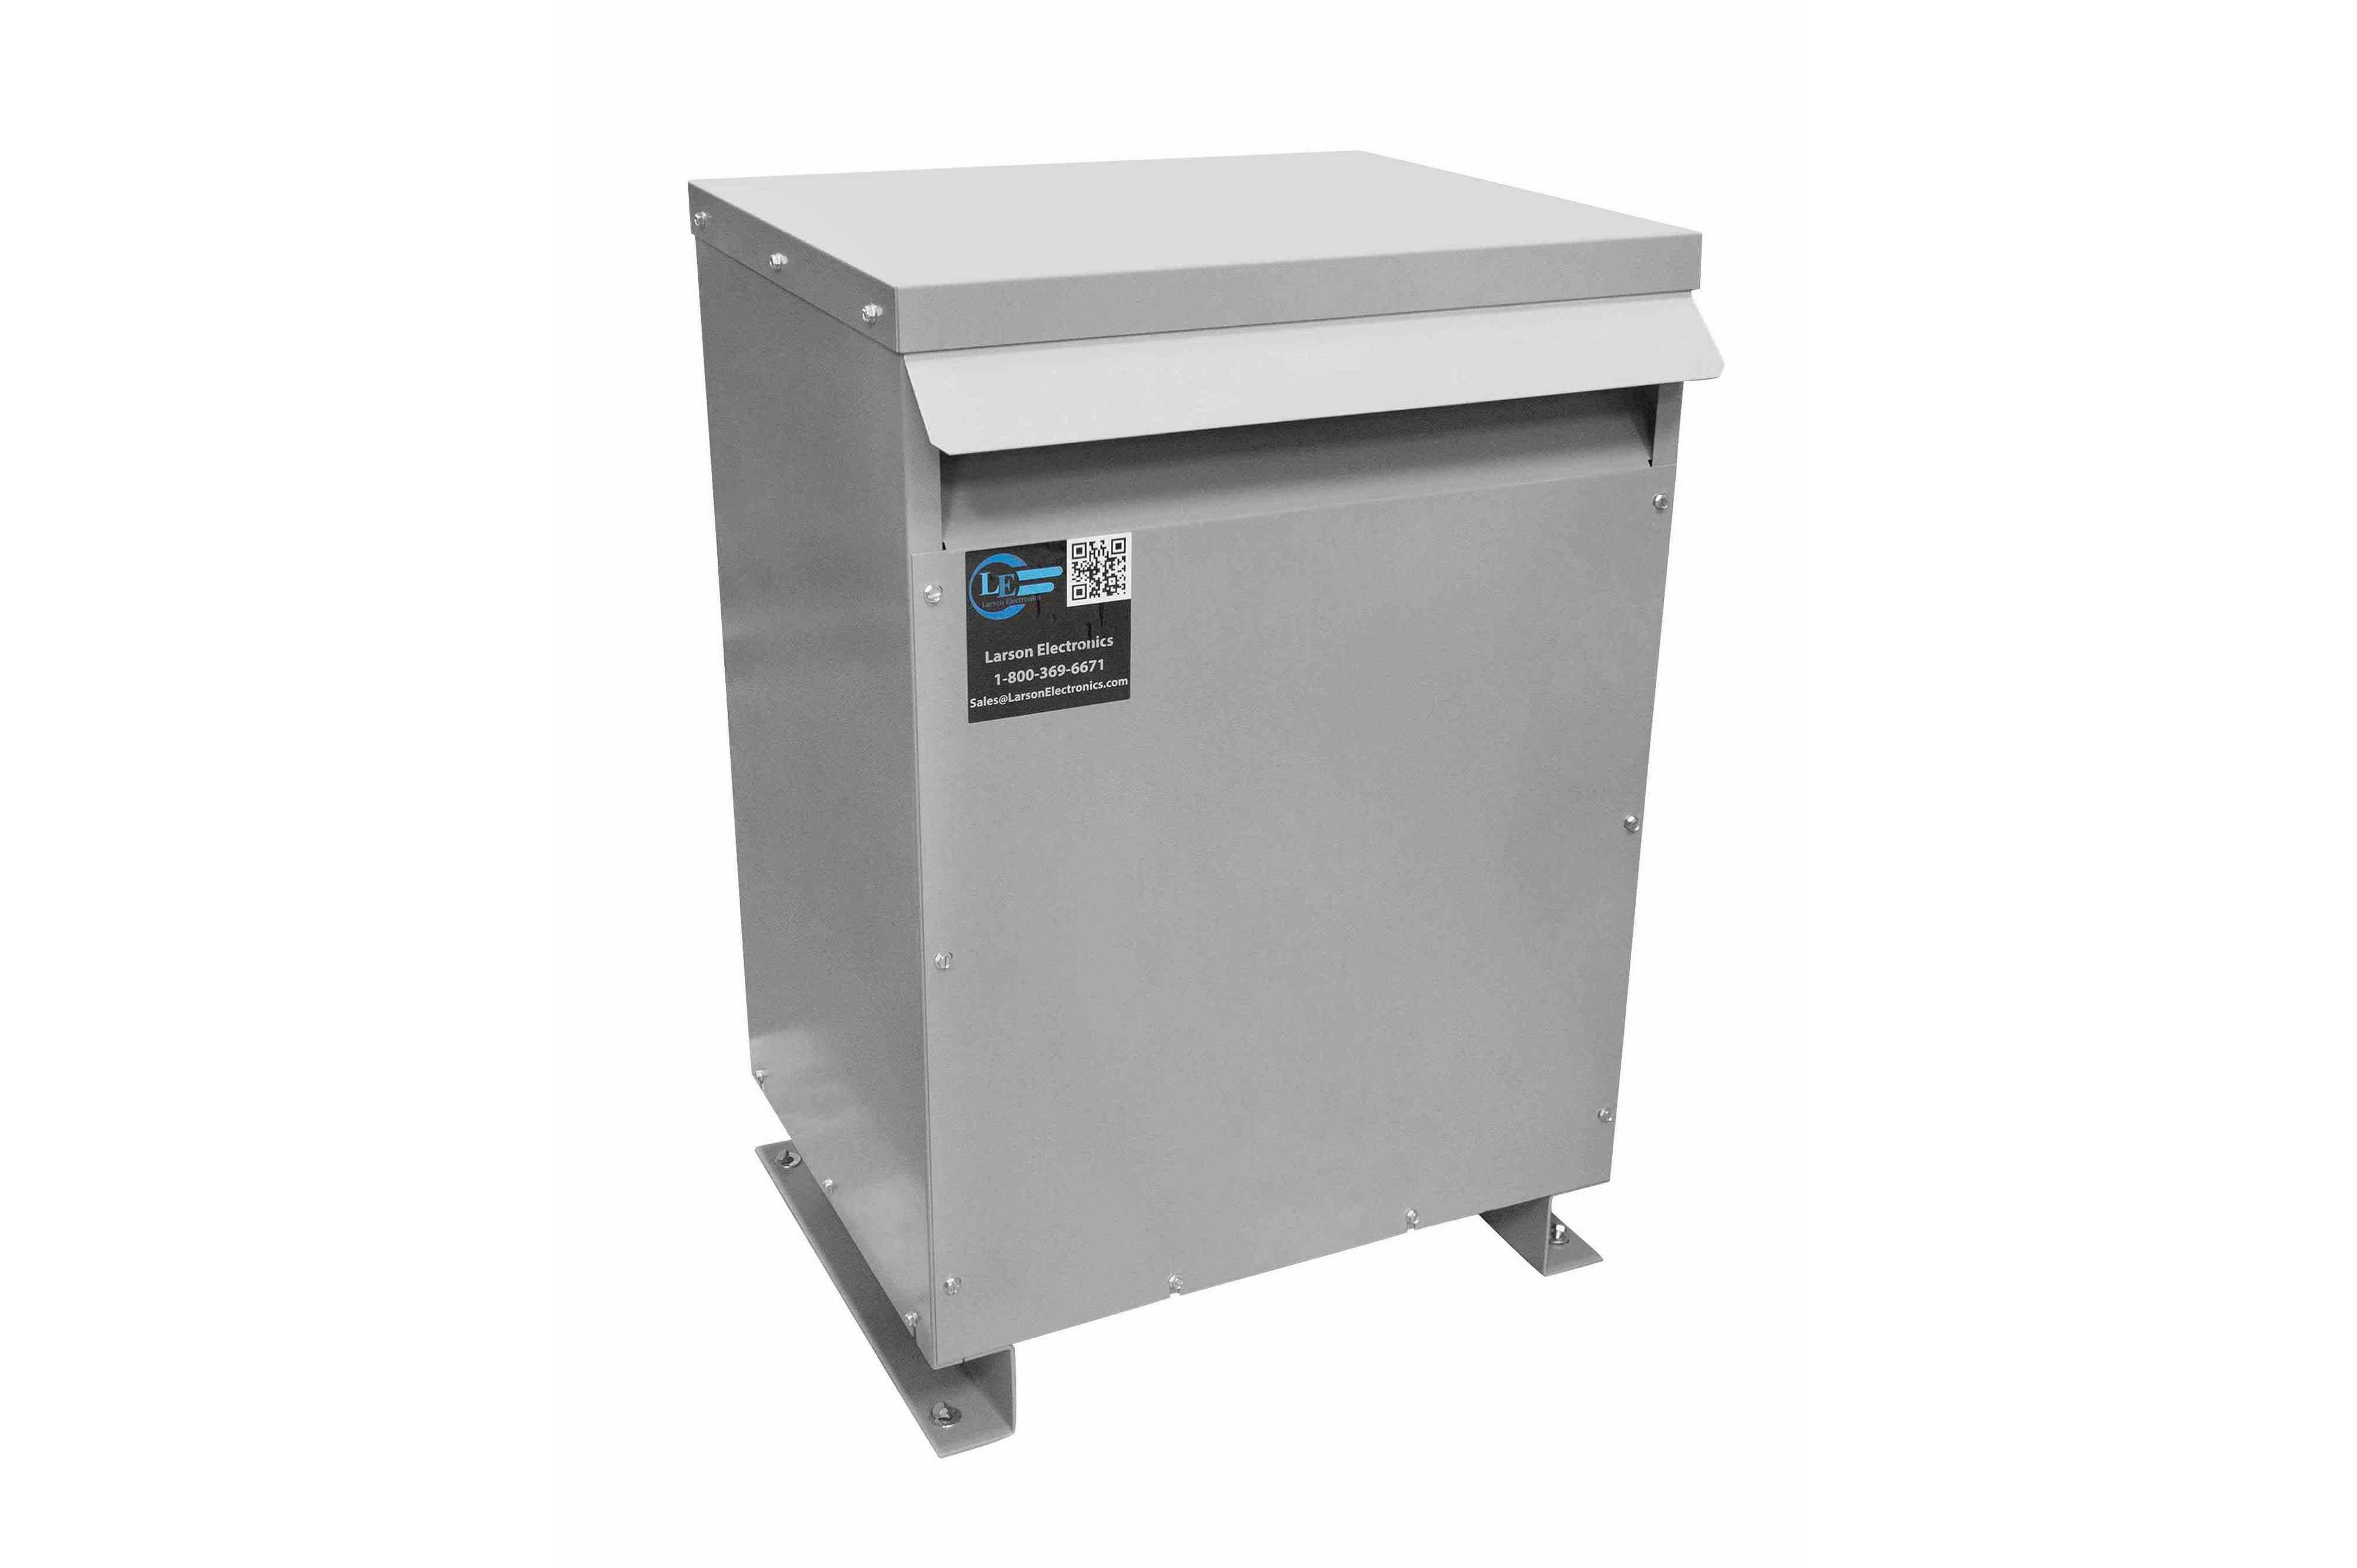 37.5 kVA 3PH Isolation Transformer, 415V Delta Primary, 240 Delta Secondary, N3R, Ventilated, 60 Hz